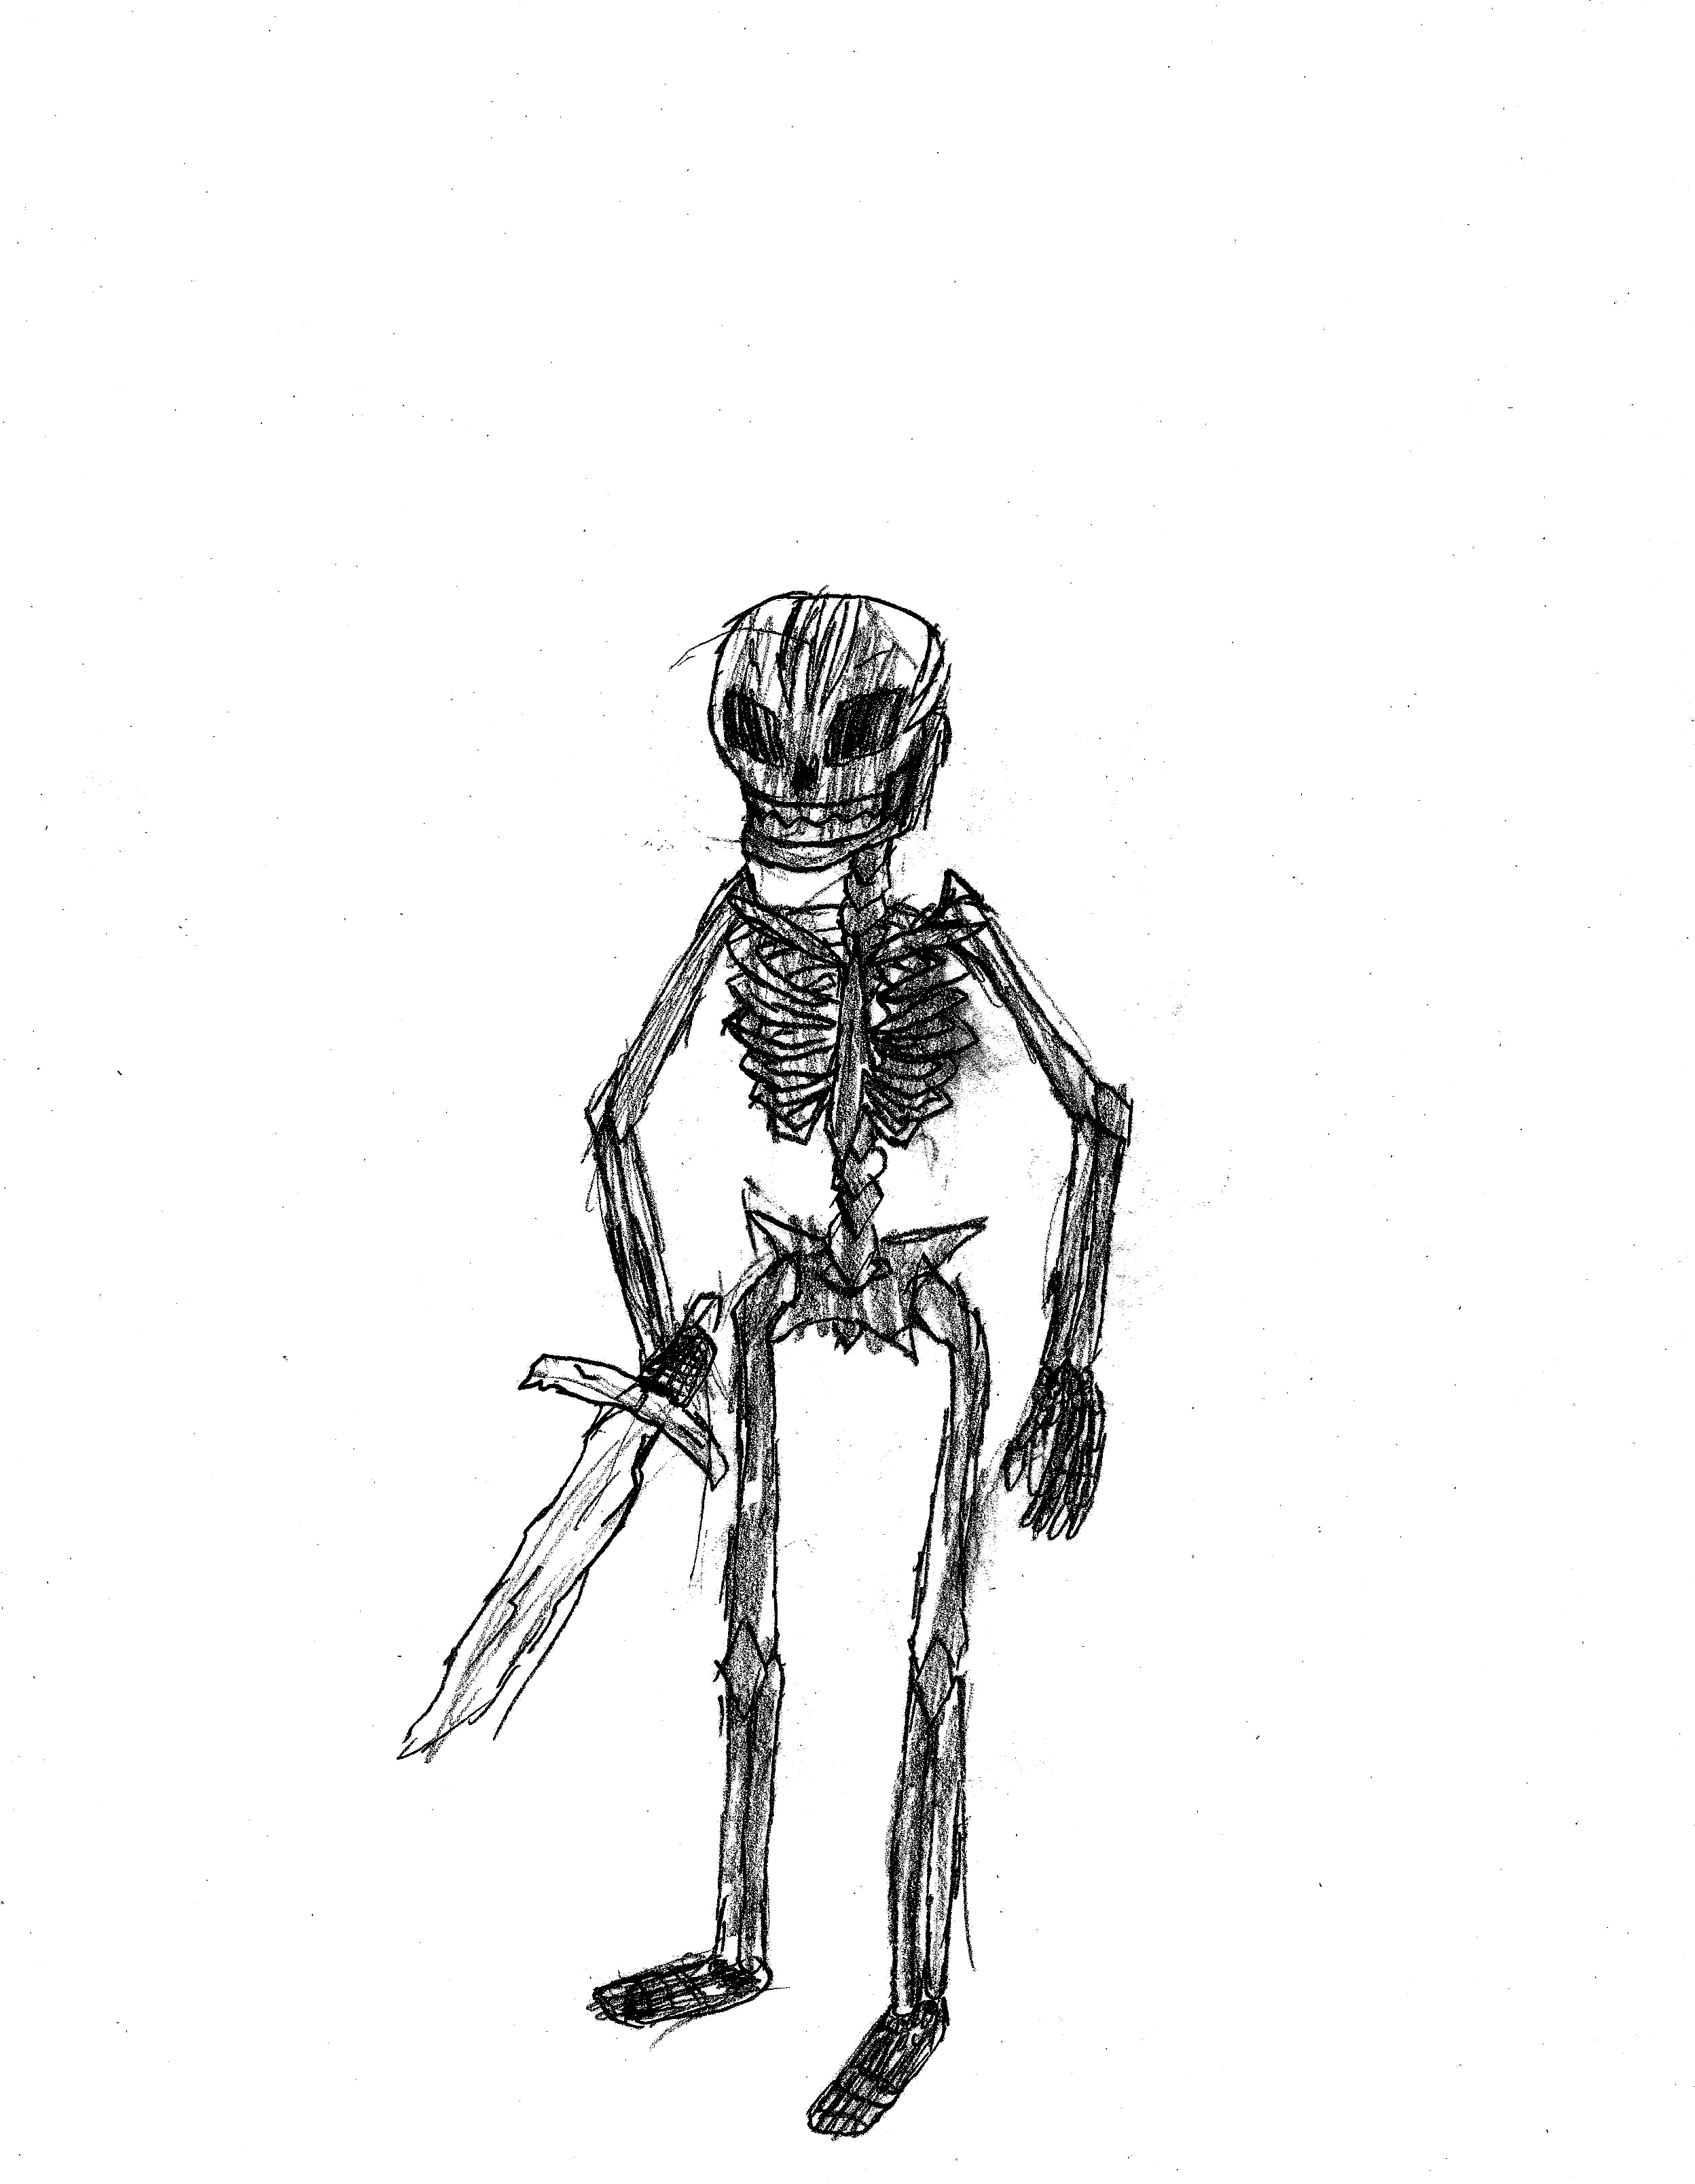 Minecraft Wither Skeleton Minecraft wither skeletonReal Life Wither Skeleton